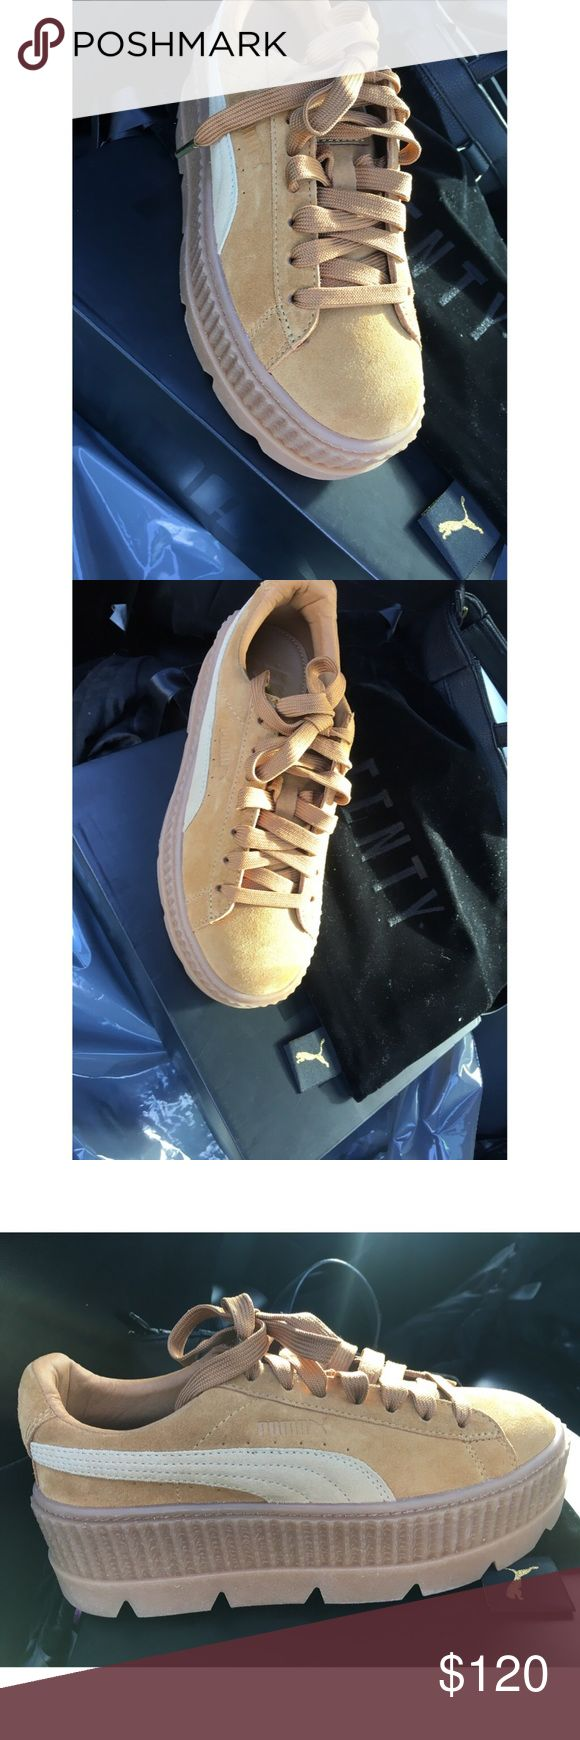 FENTY by RIHANNA SUEDE CLEATED CREEPERS Classic Creeper design with an elevated platform sole  Padded collar for added comfort  FENTY SUEDE CLEATED CREEPERS   Size 5 for Ladies (7.5)   NEW IN BOX WITH DUST BAG  OBO Puma Shoes Sneakers